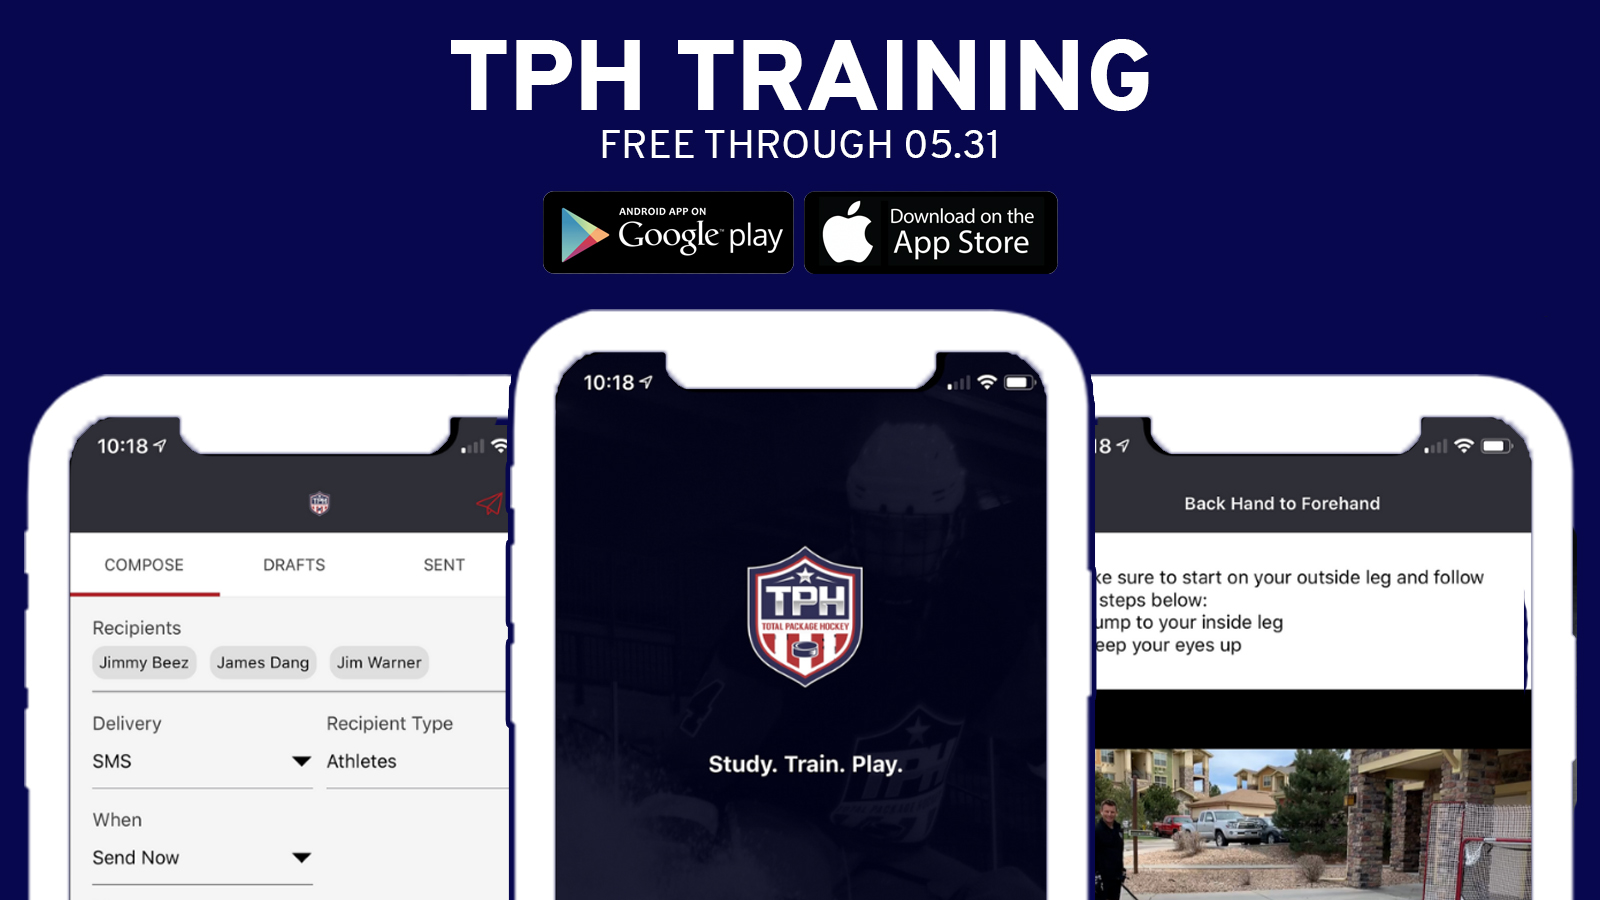 TPH TRAINING APP WEB